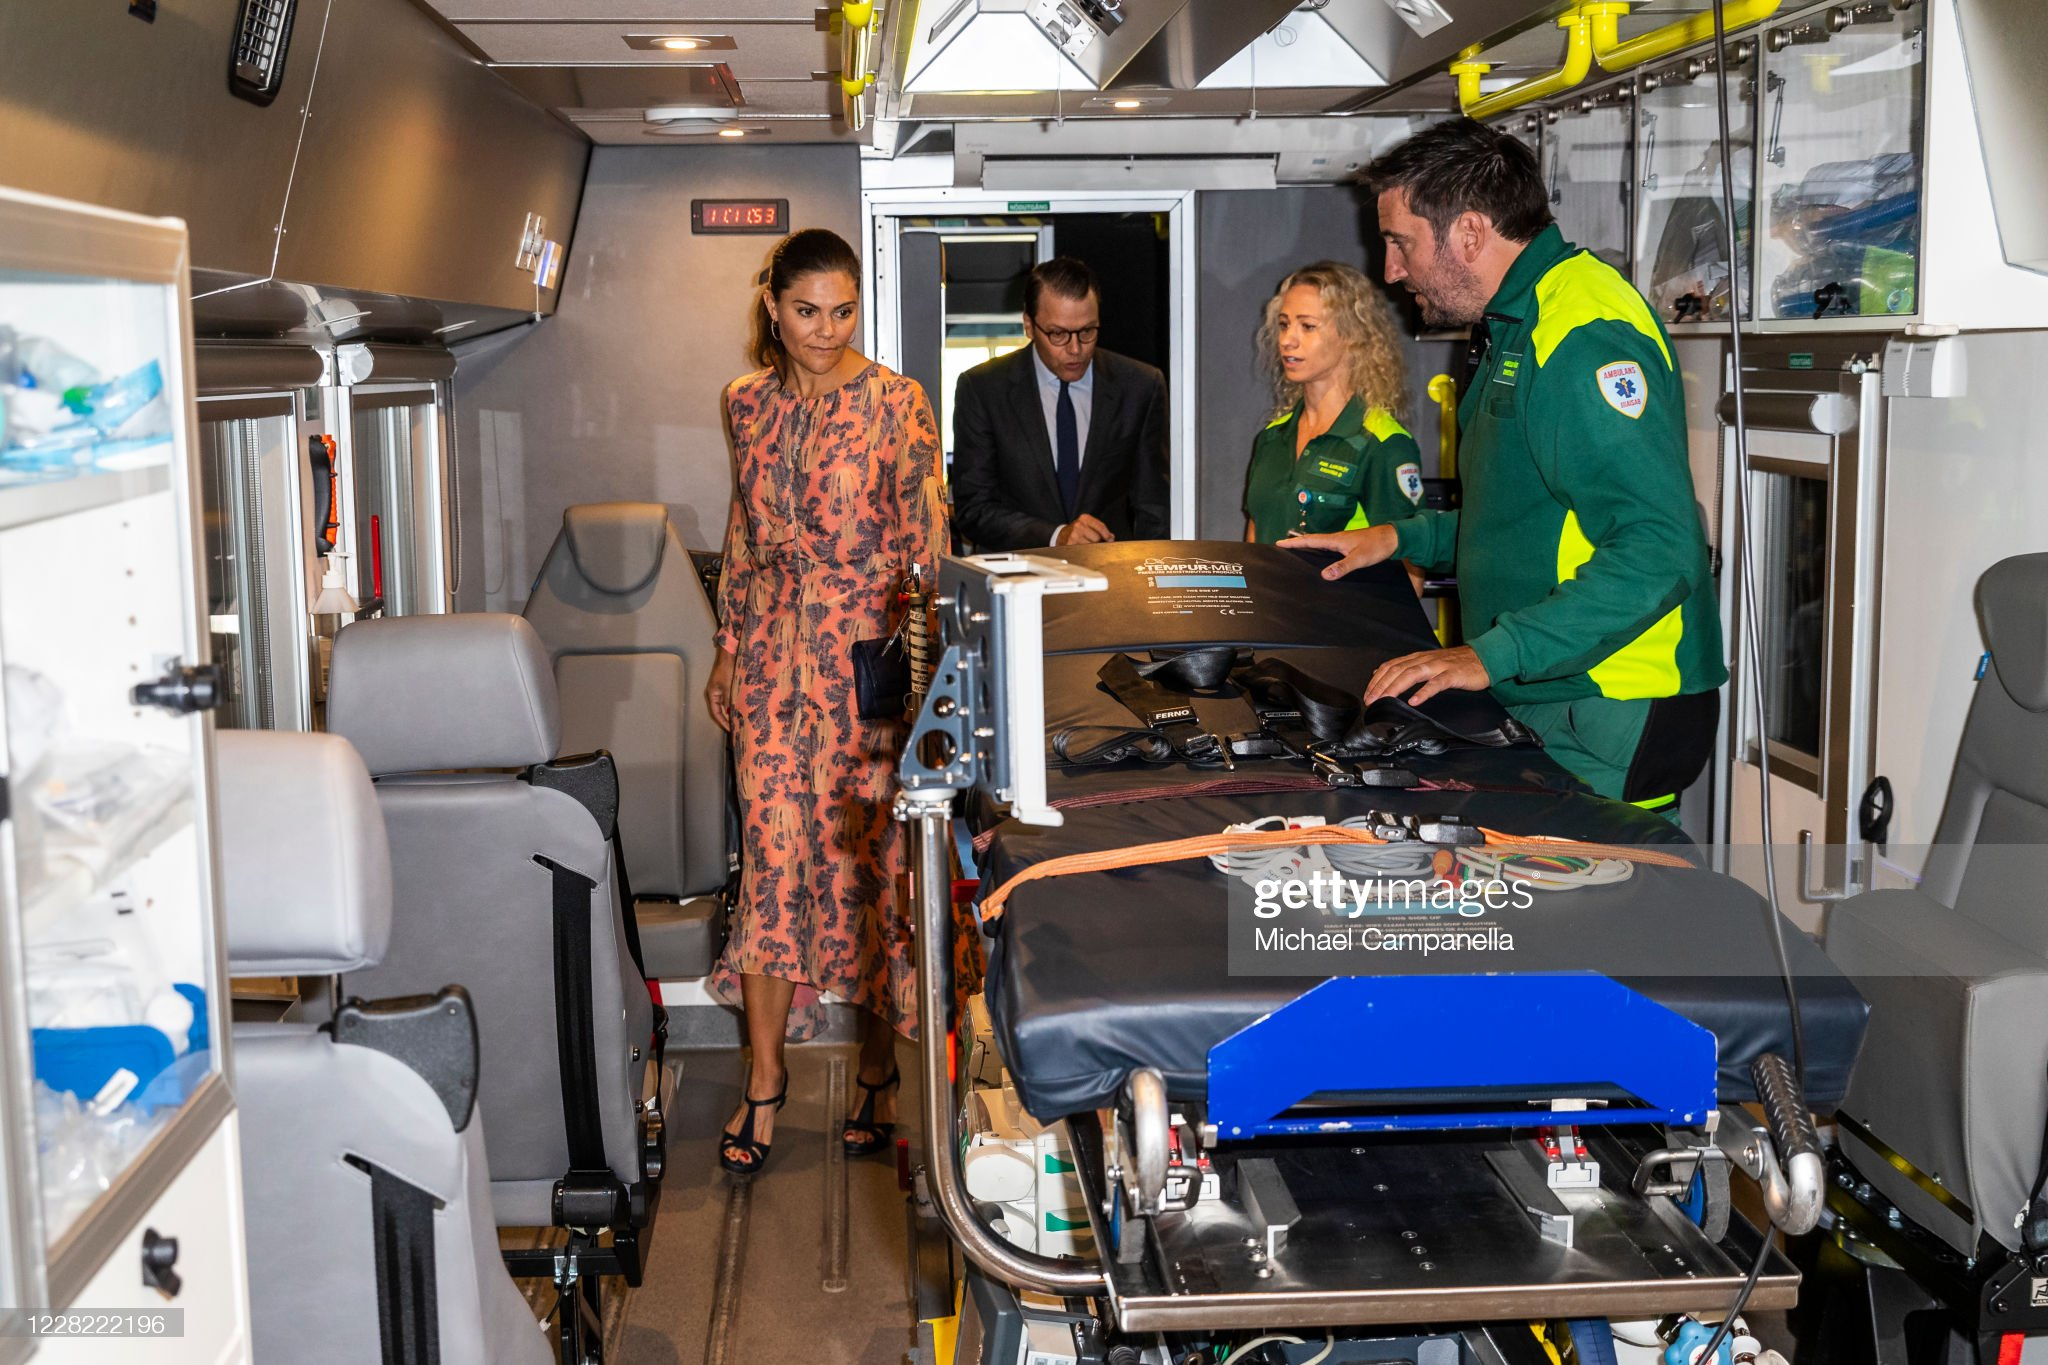 crown-princess-victoria-and-prince-daniel-of-sweden-visit-an-station-picture-id1228222196